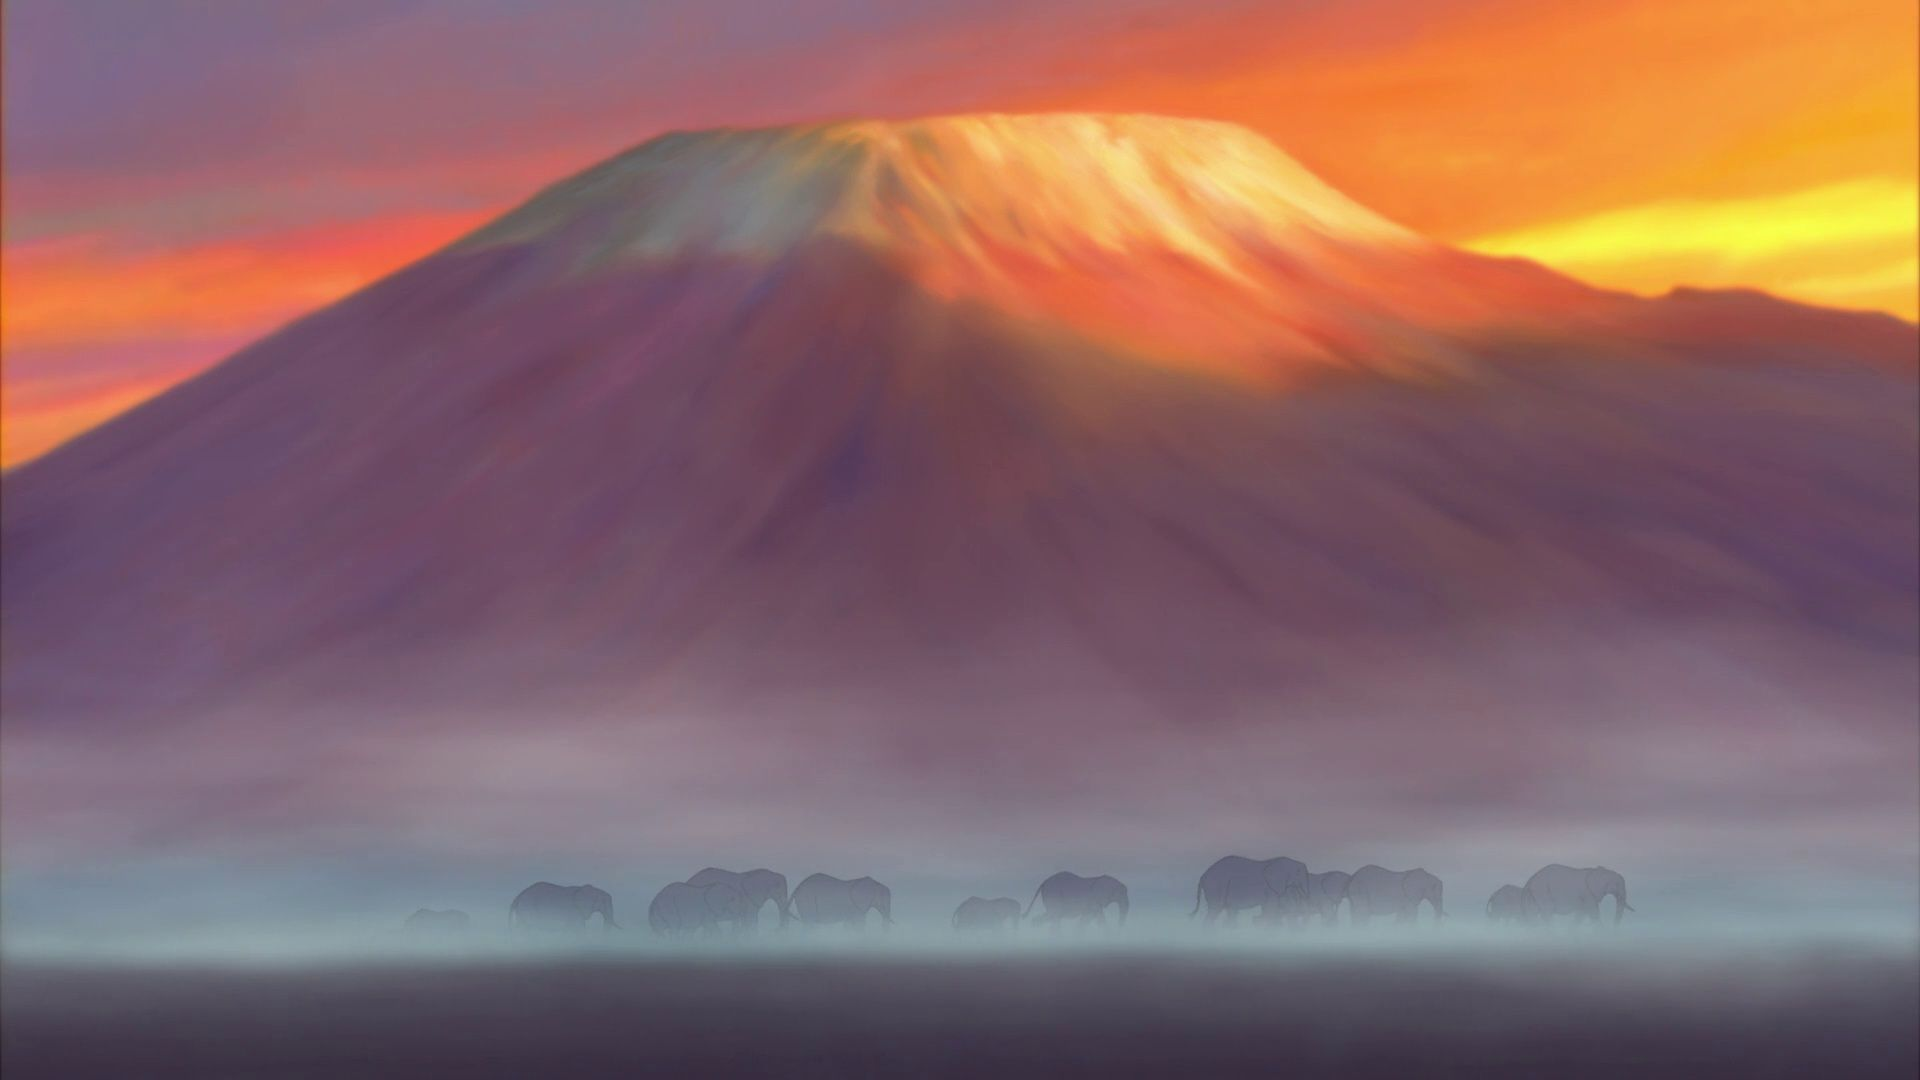 The Lion King background art